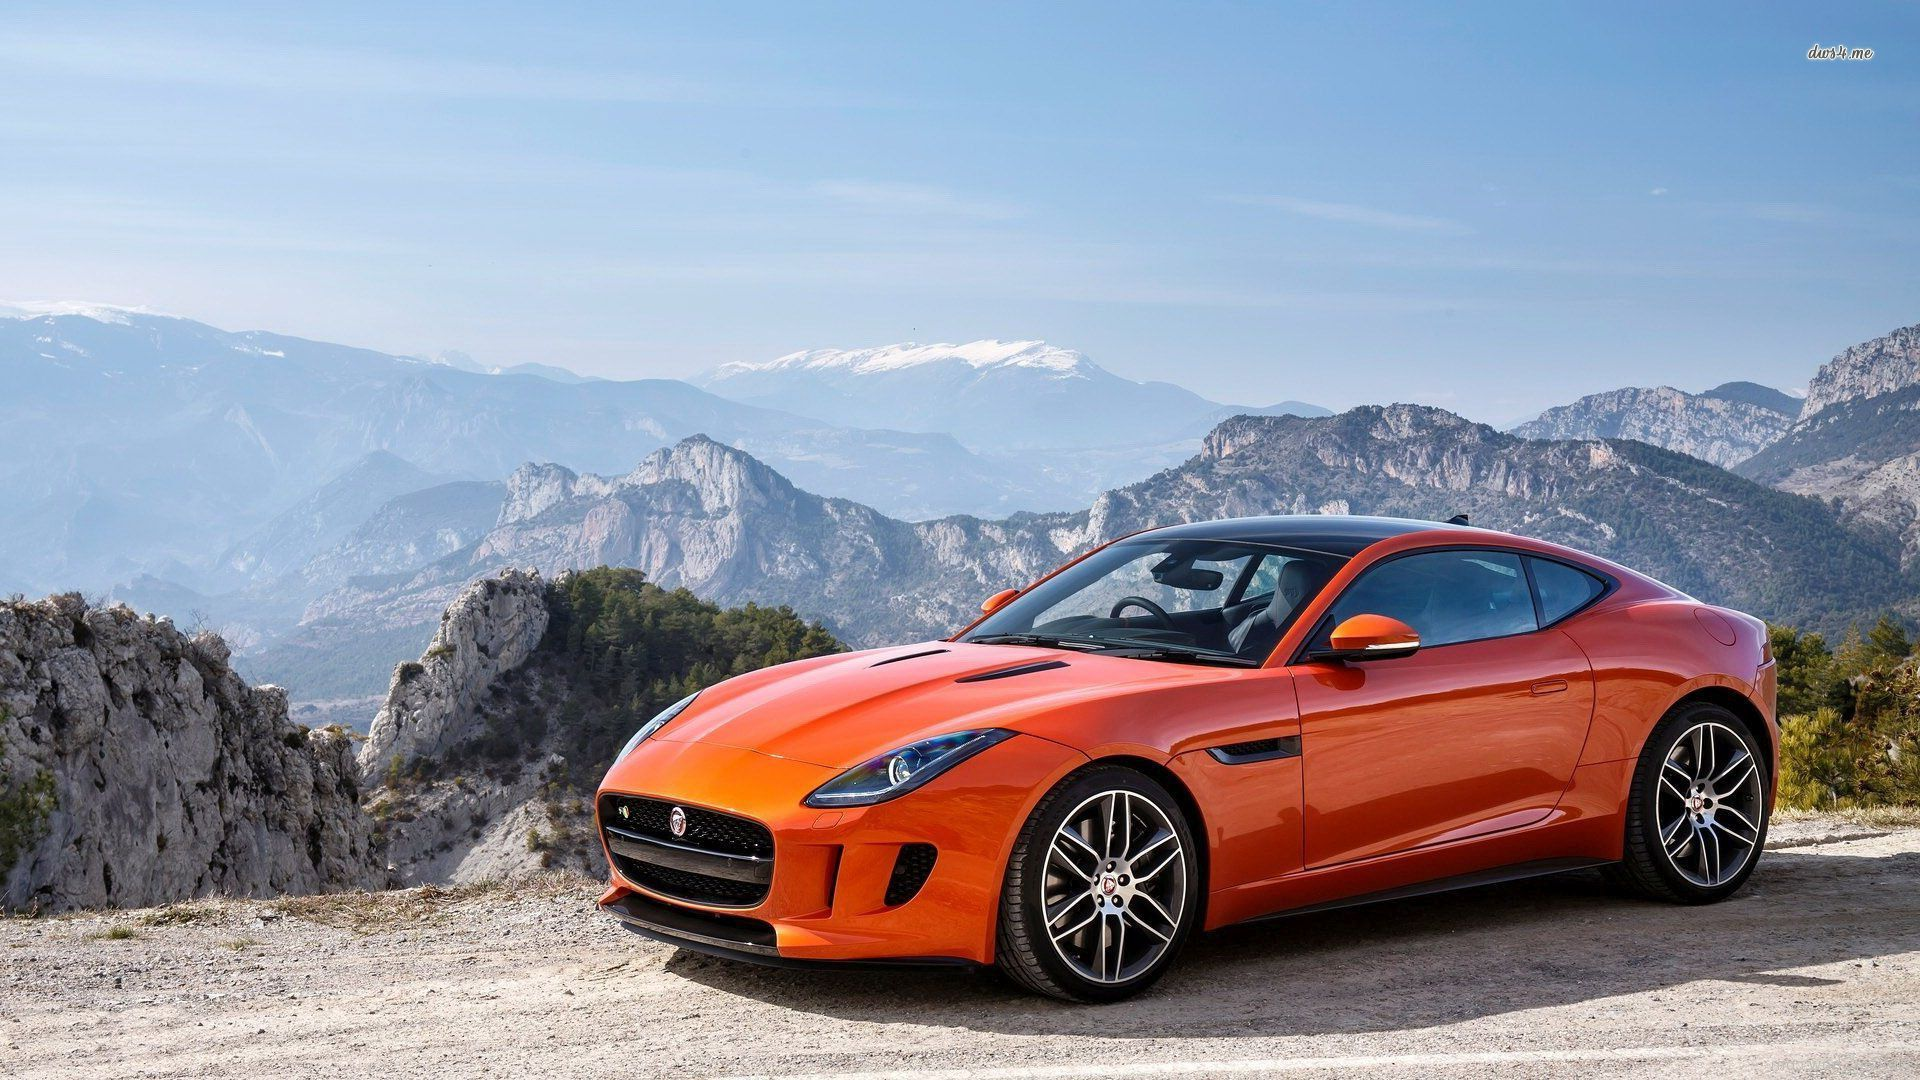 Jaguar f type coupe wallpaper - photo#6